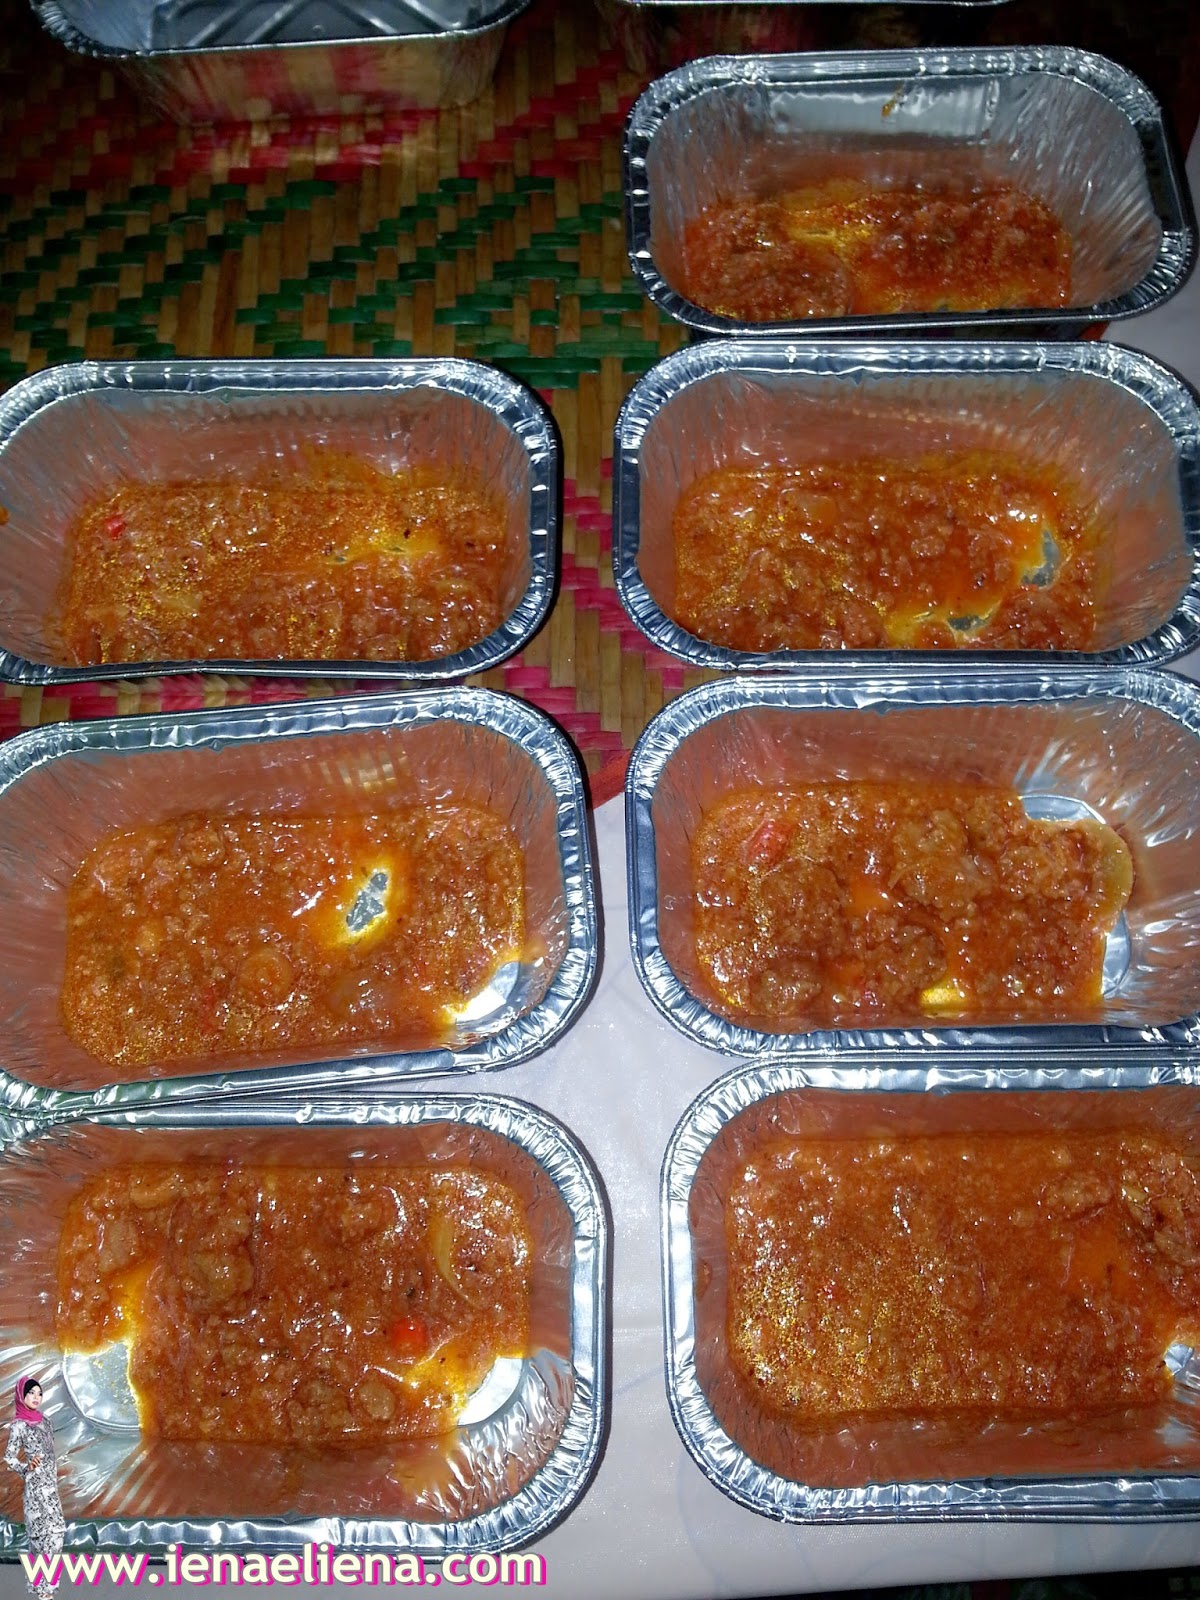 Qaseh Baked Macaroni In The Making